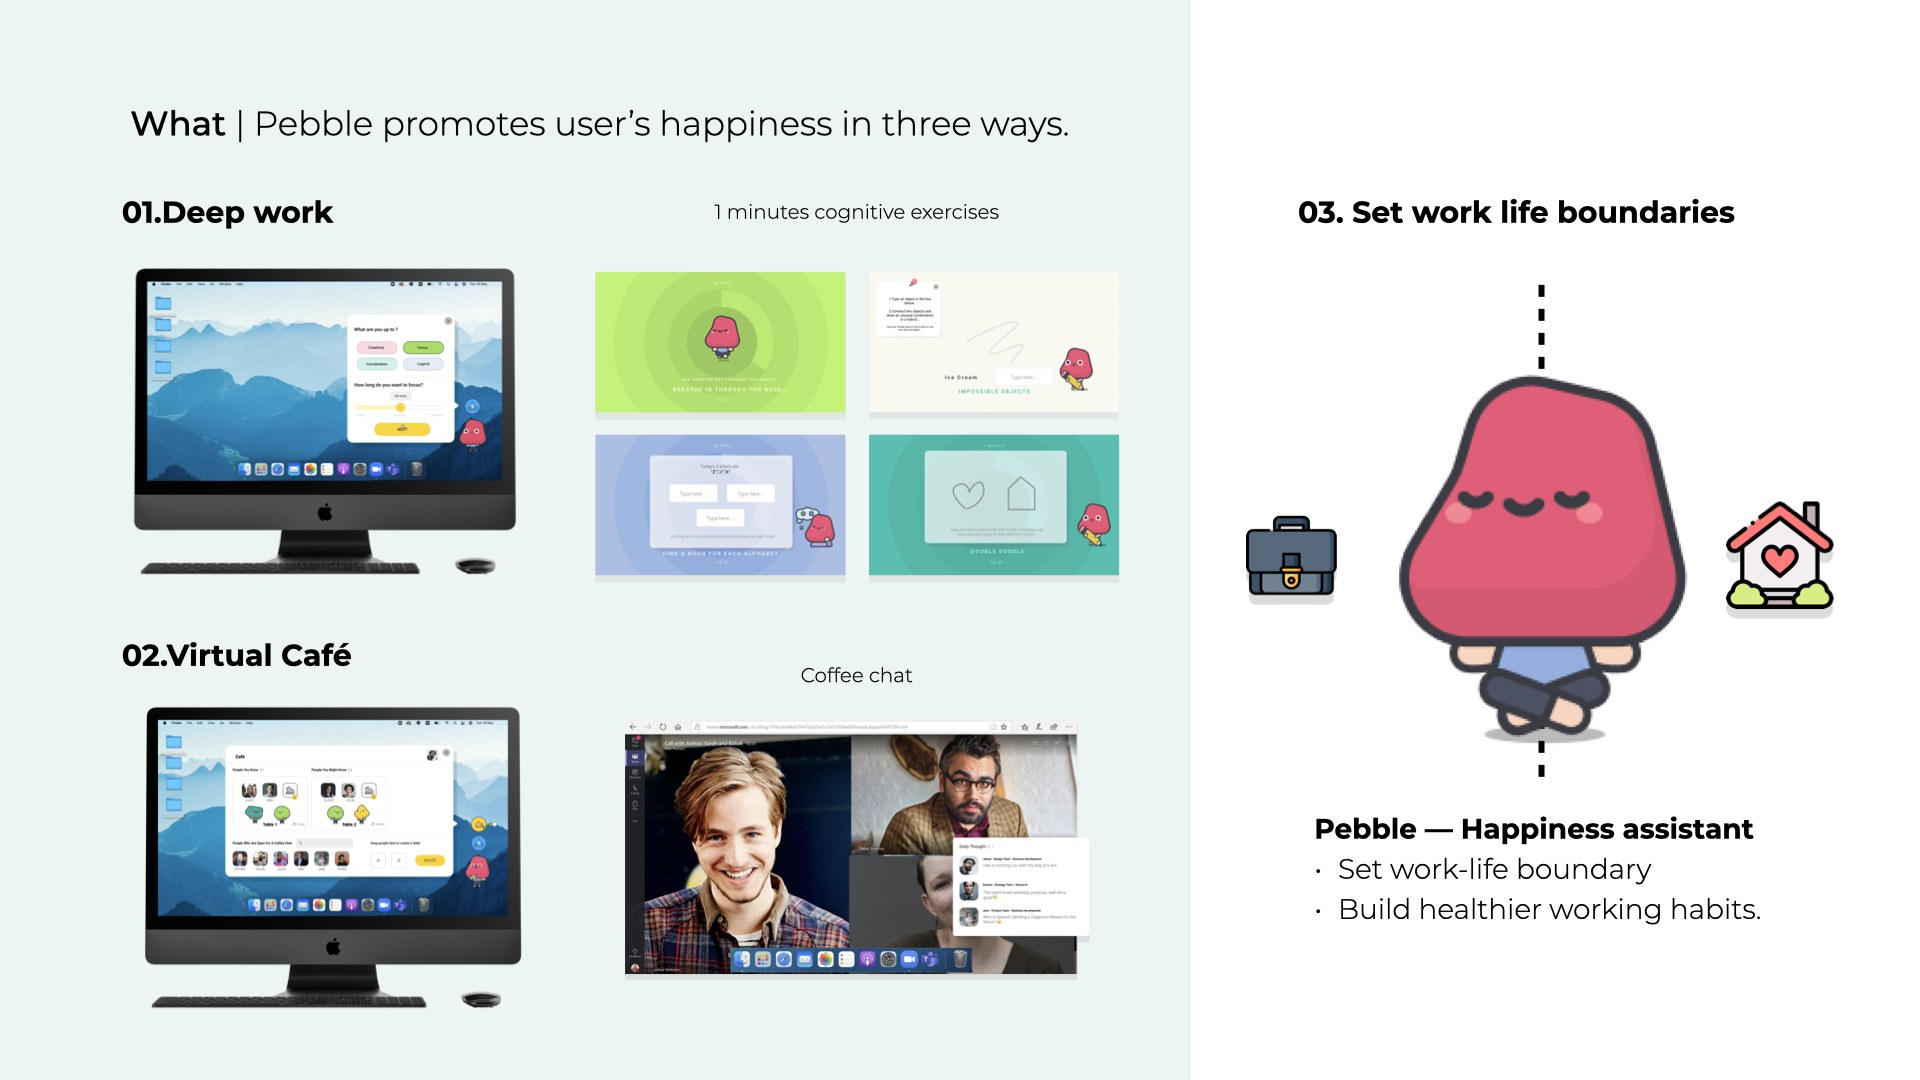 Pebble promotes remote worker's happiness in three ways.